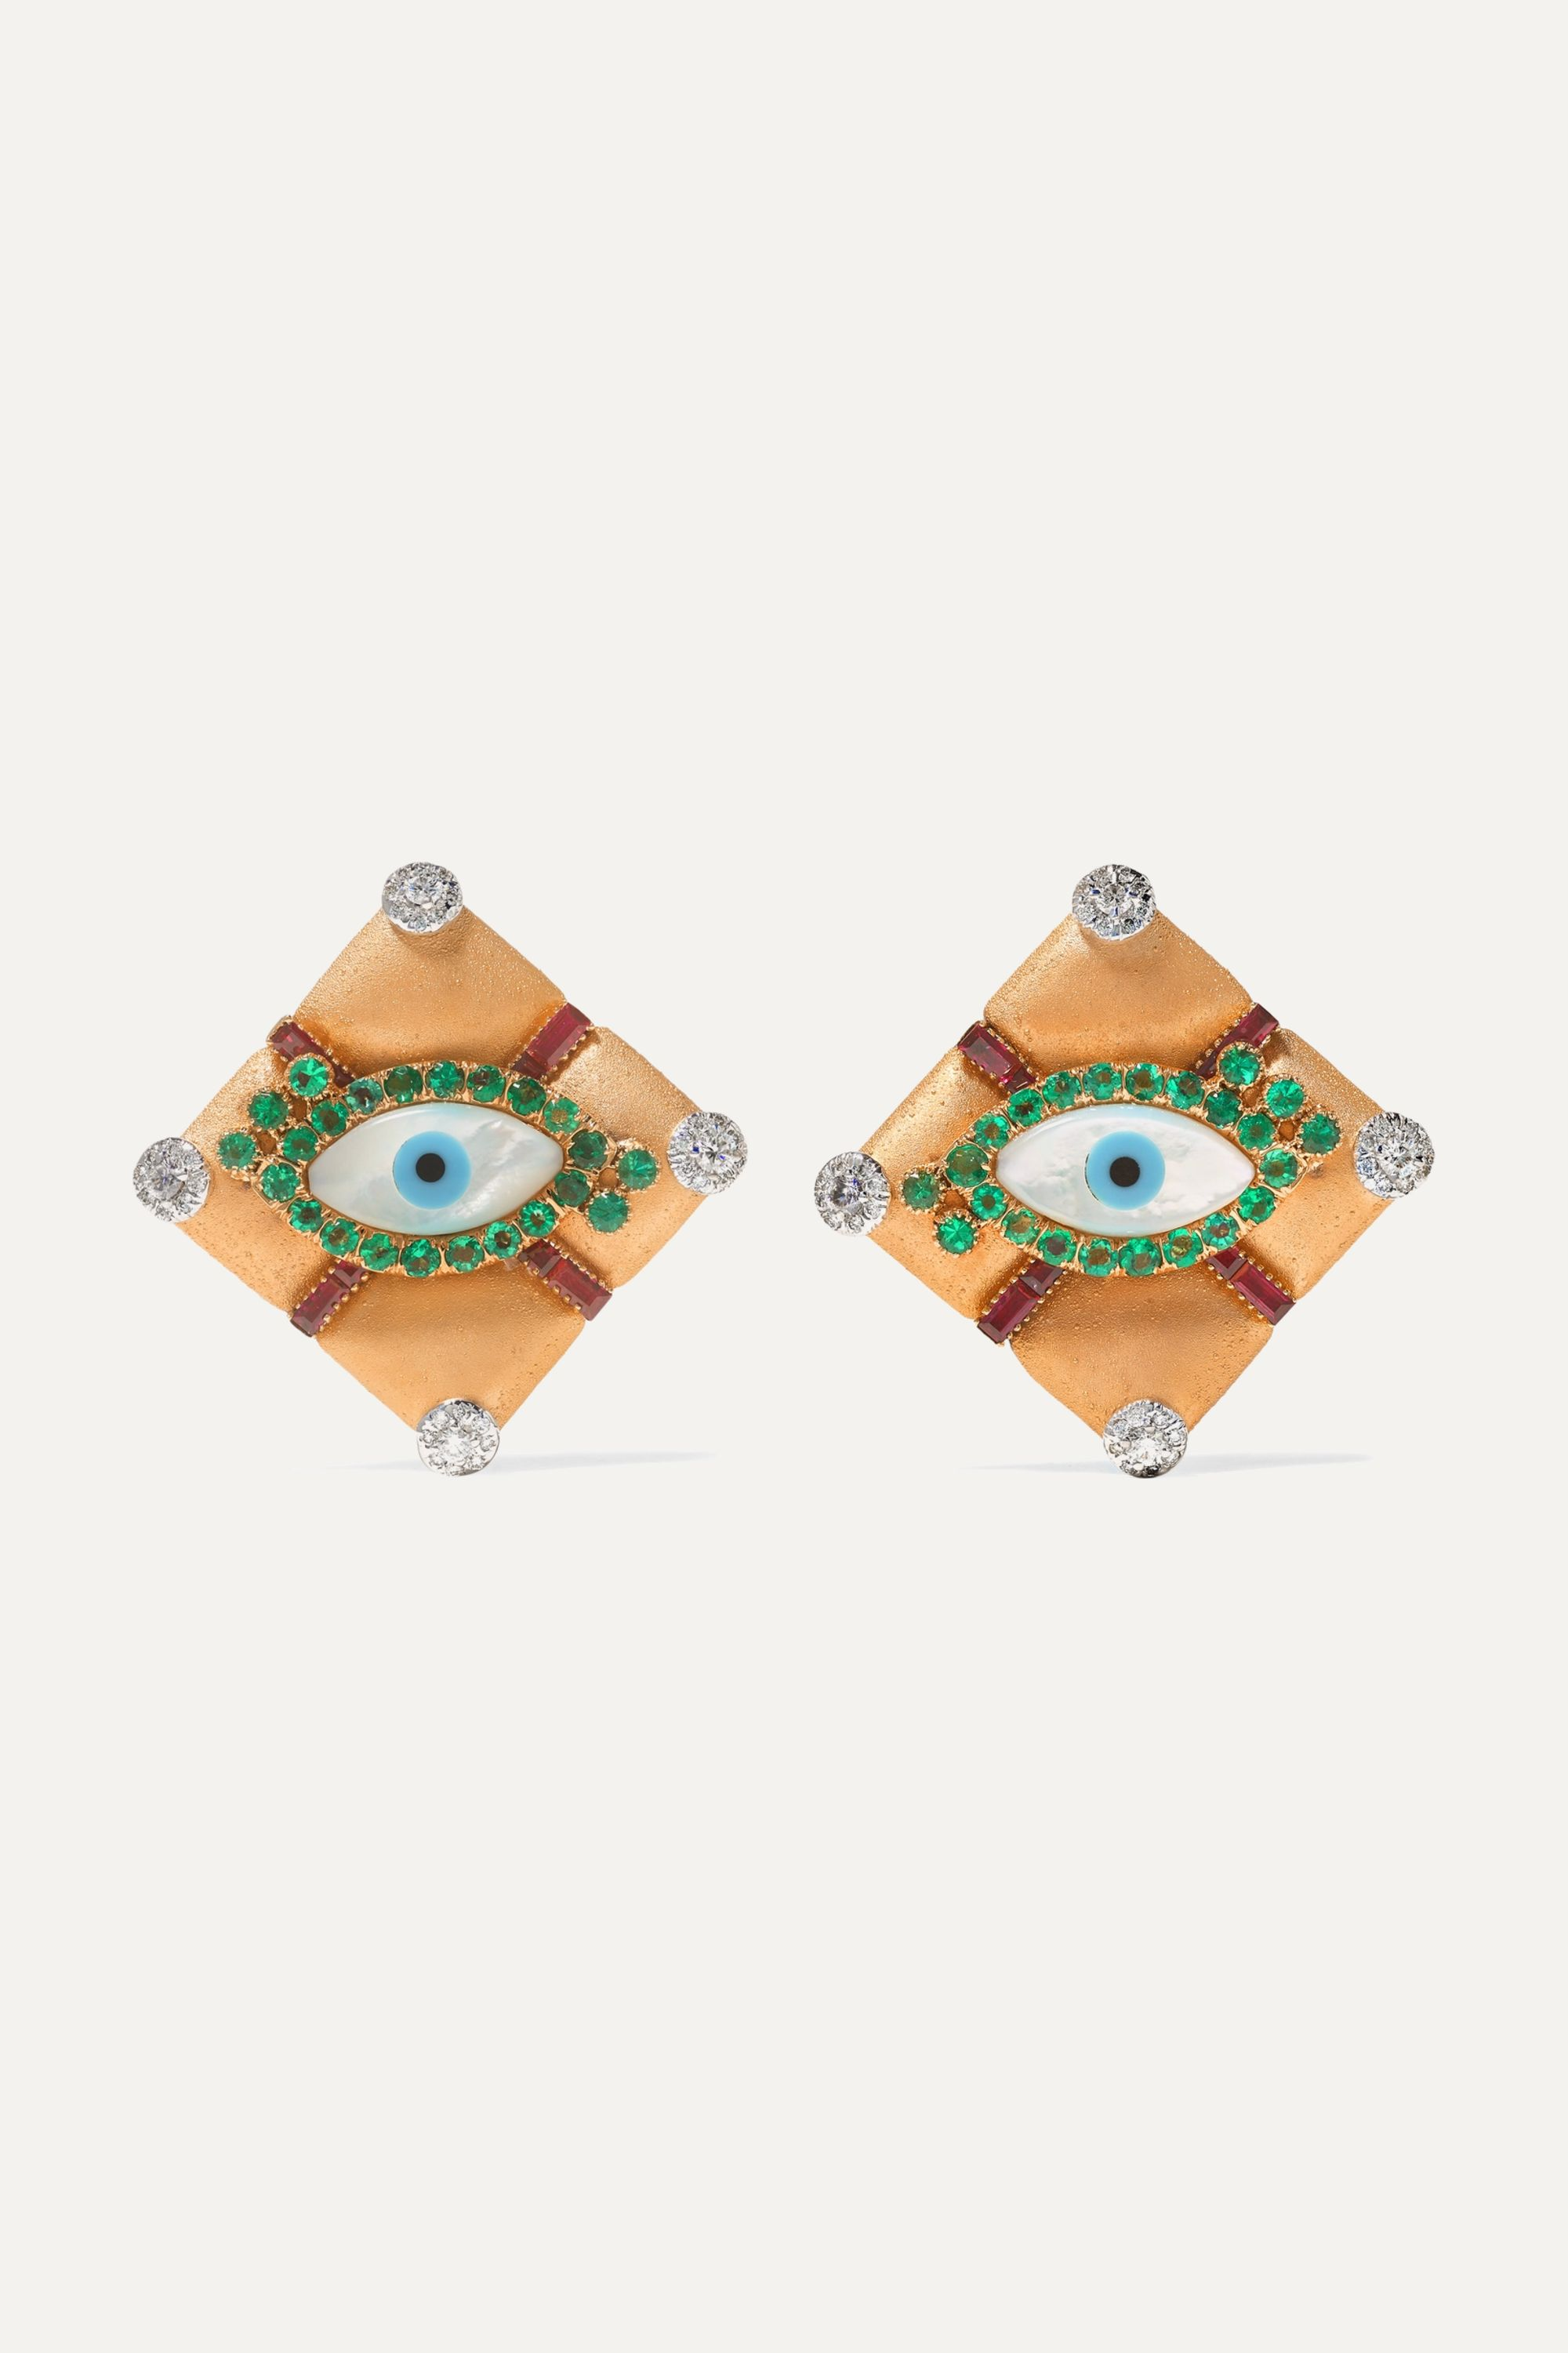 Bina Goenka 18-karat gold multi-stone earrings